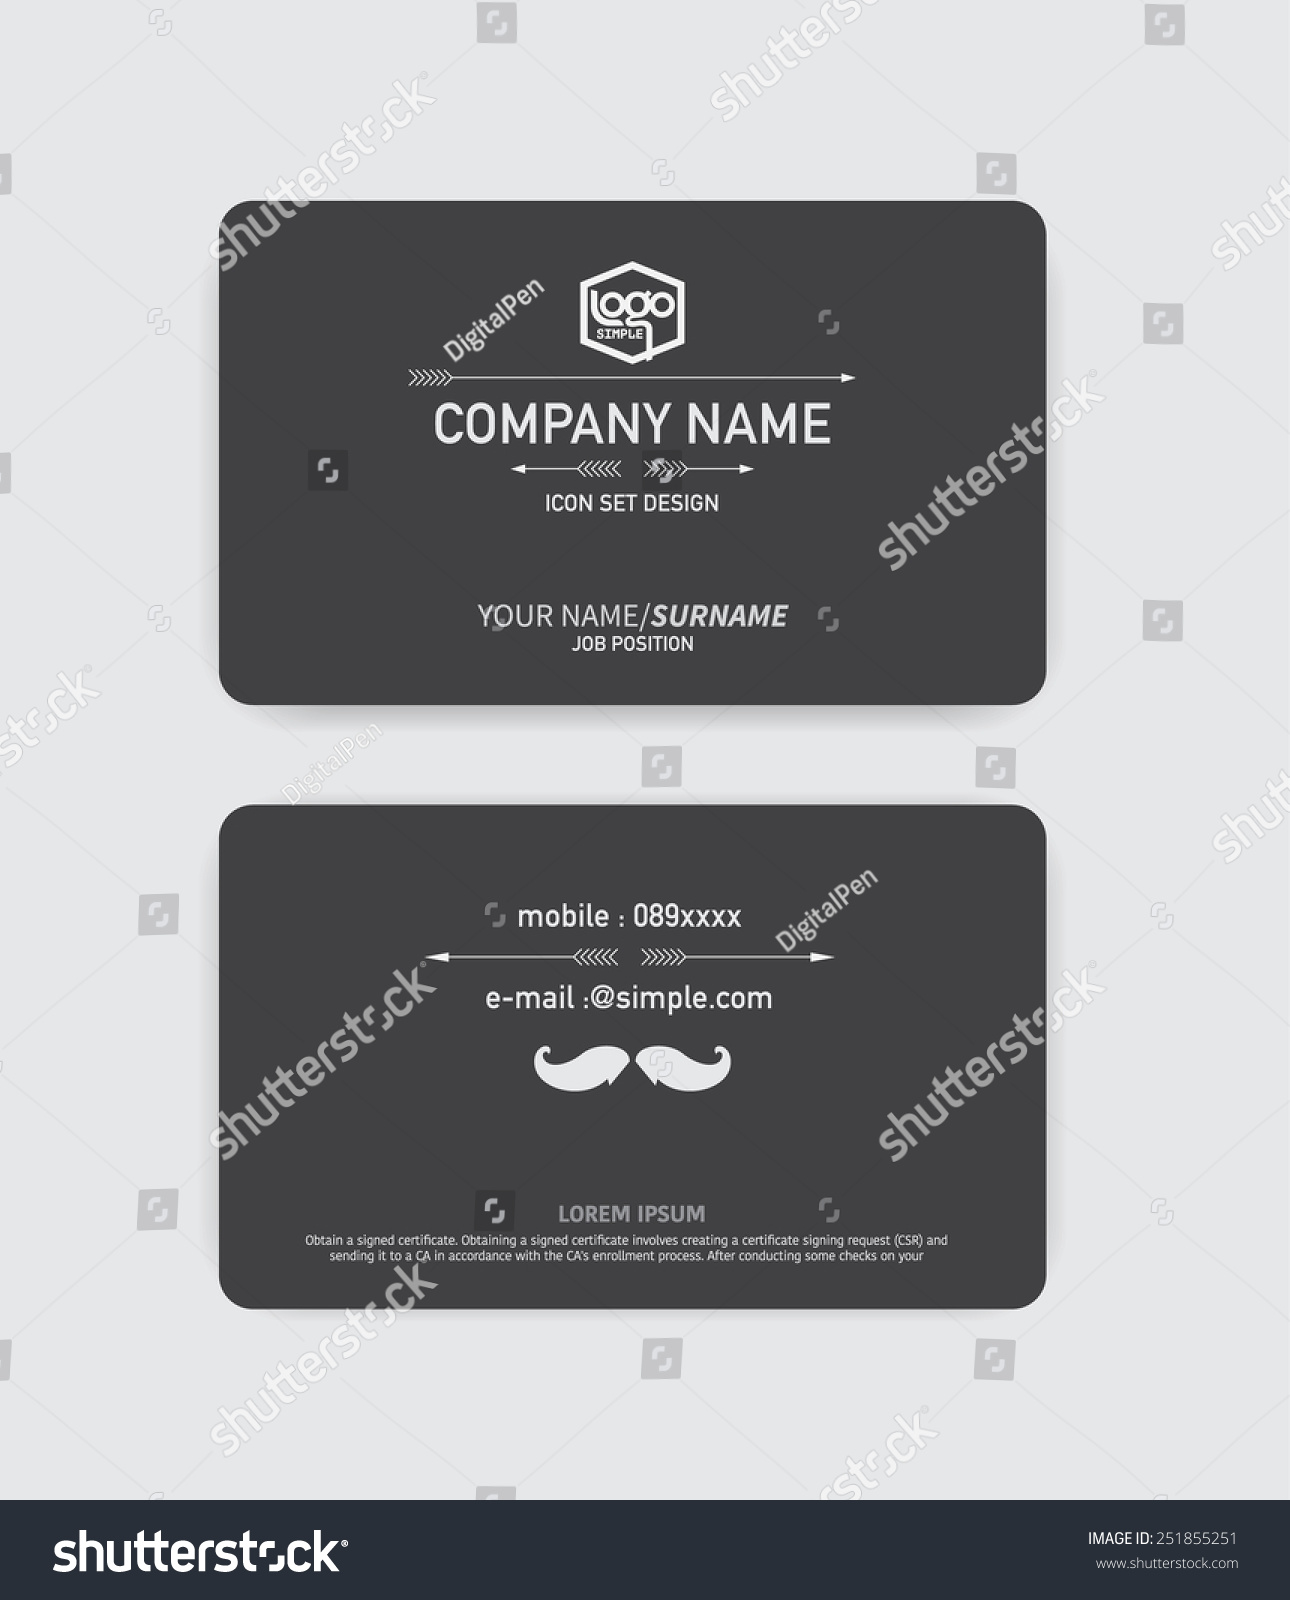 Hipster business card vector background stock vector for Hipster business card